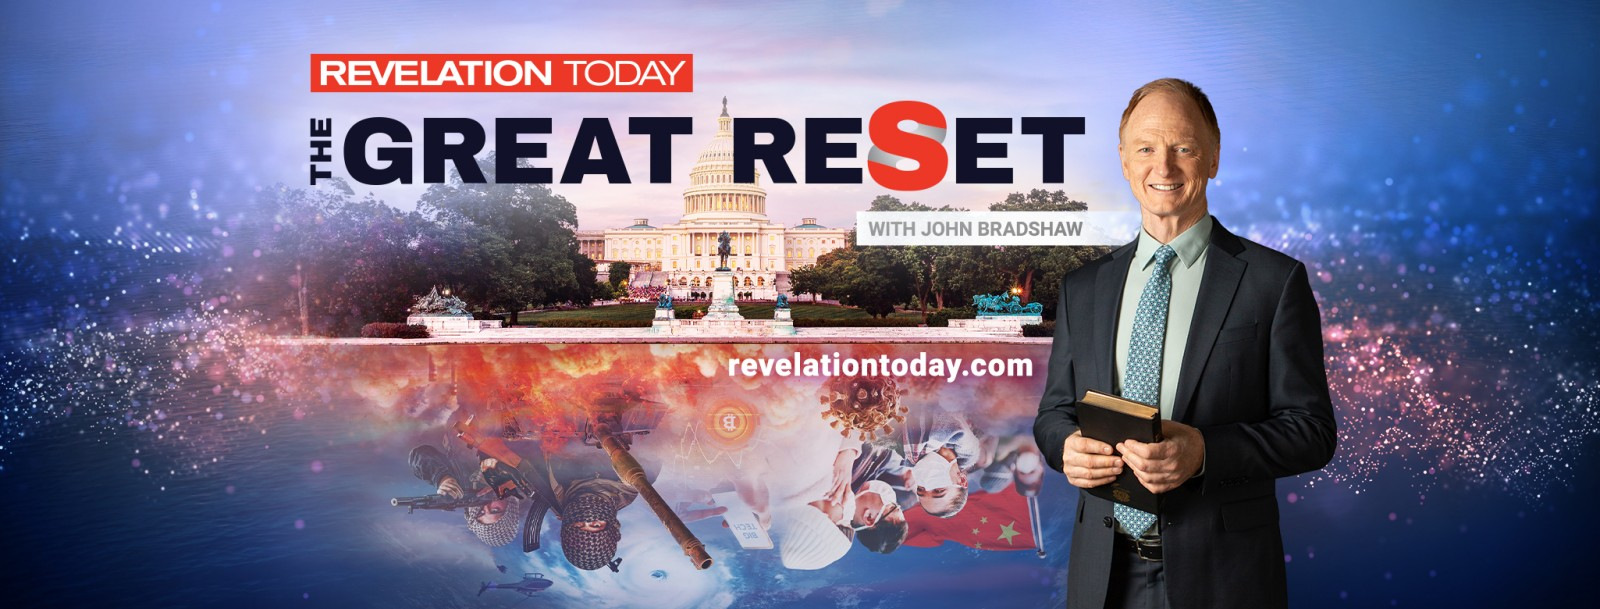 RT Great Reset Facebook cover photo OCT 8